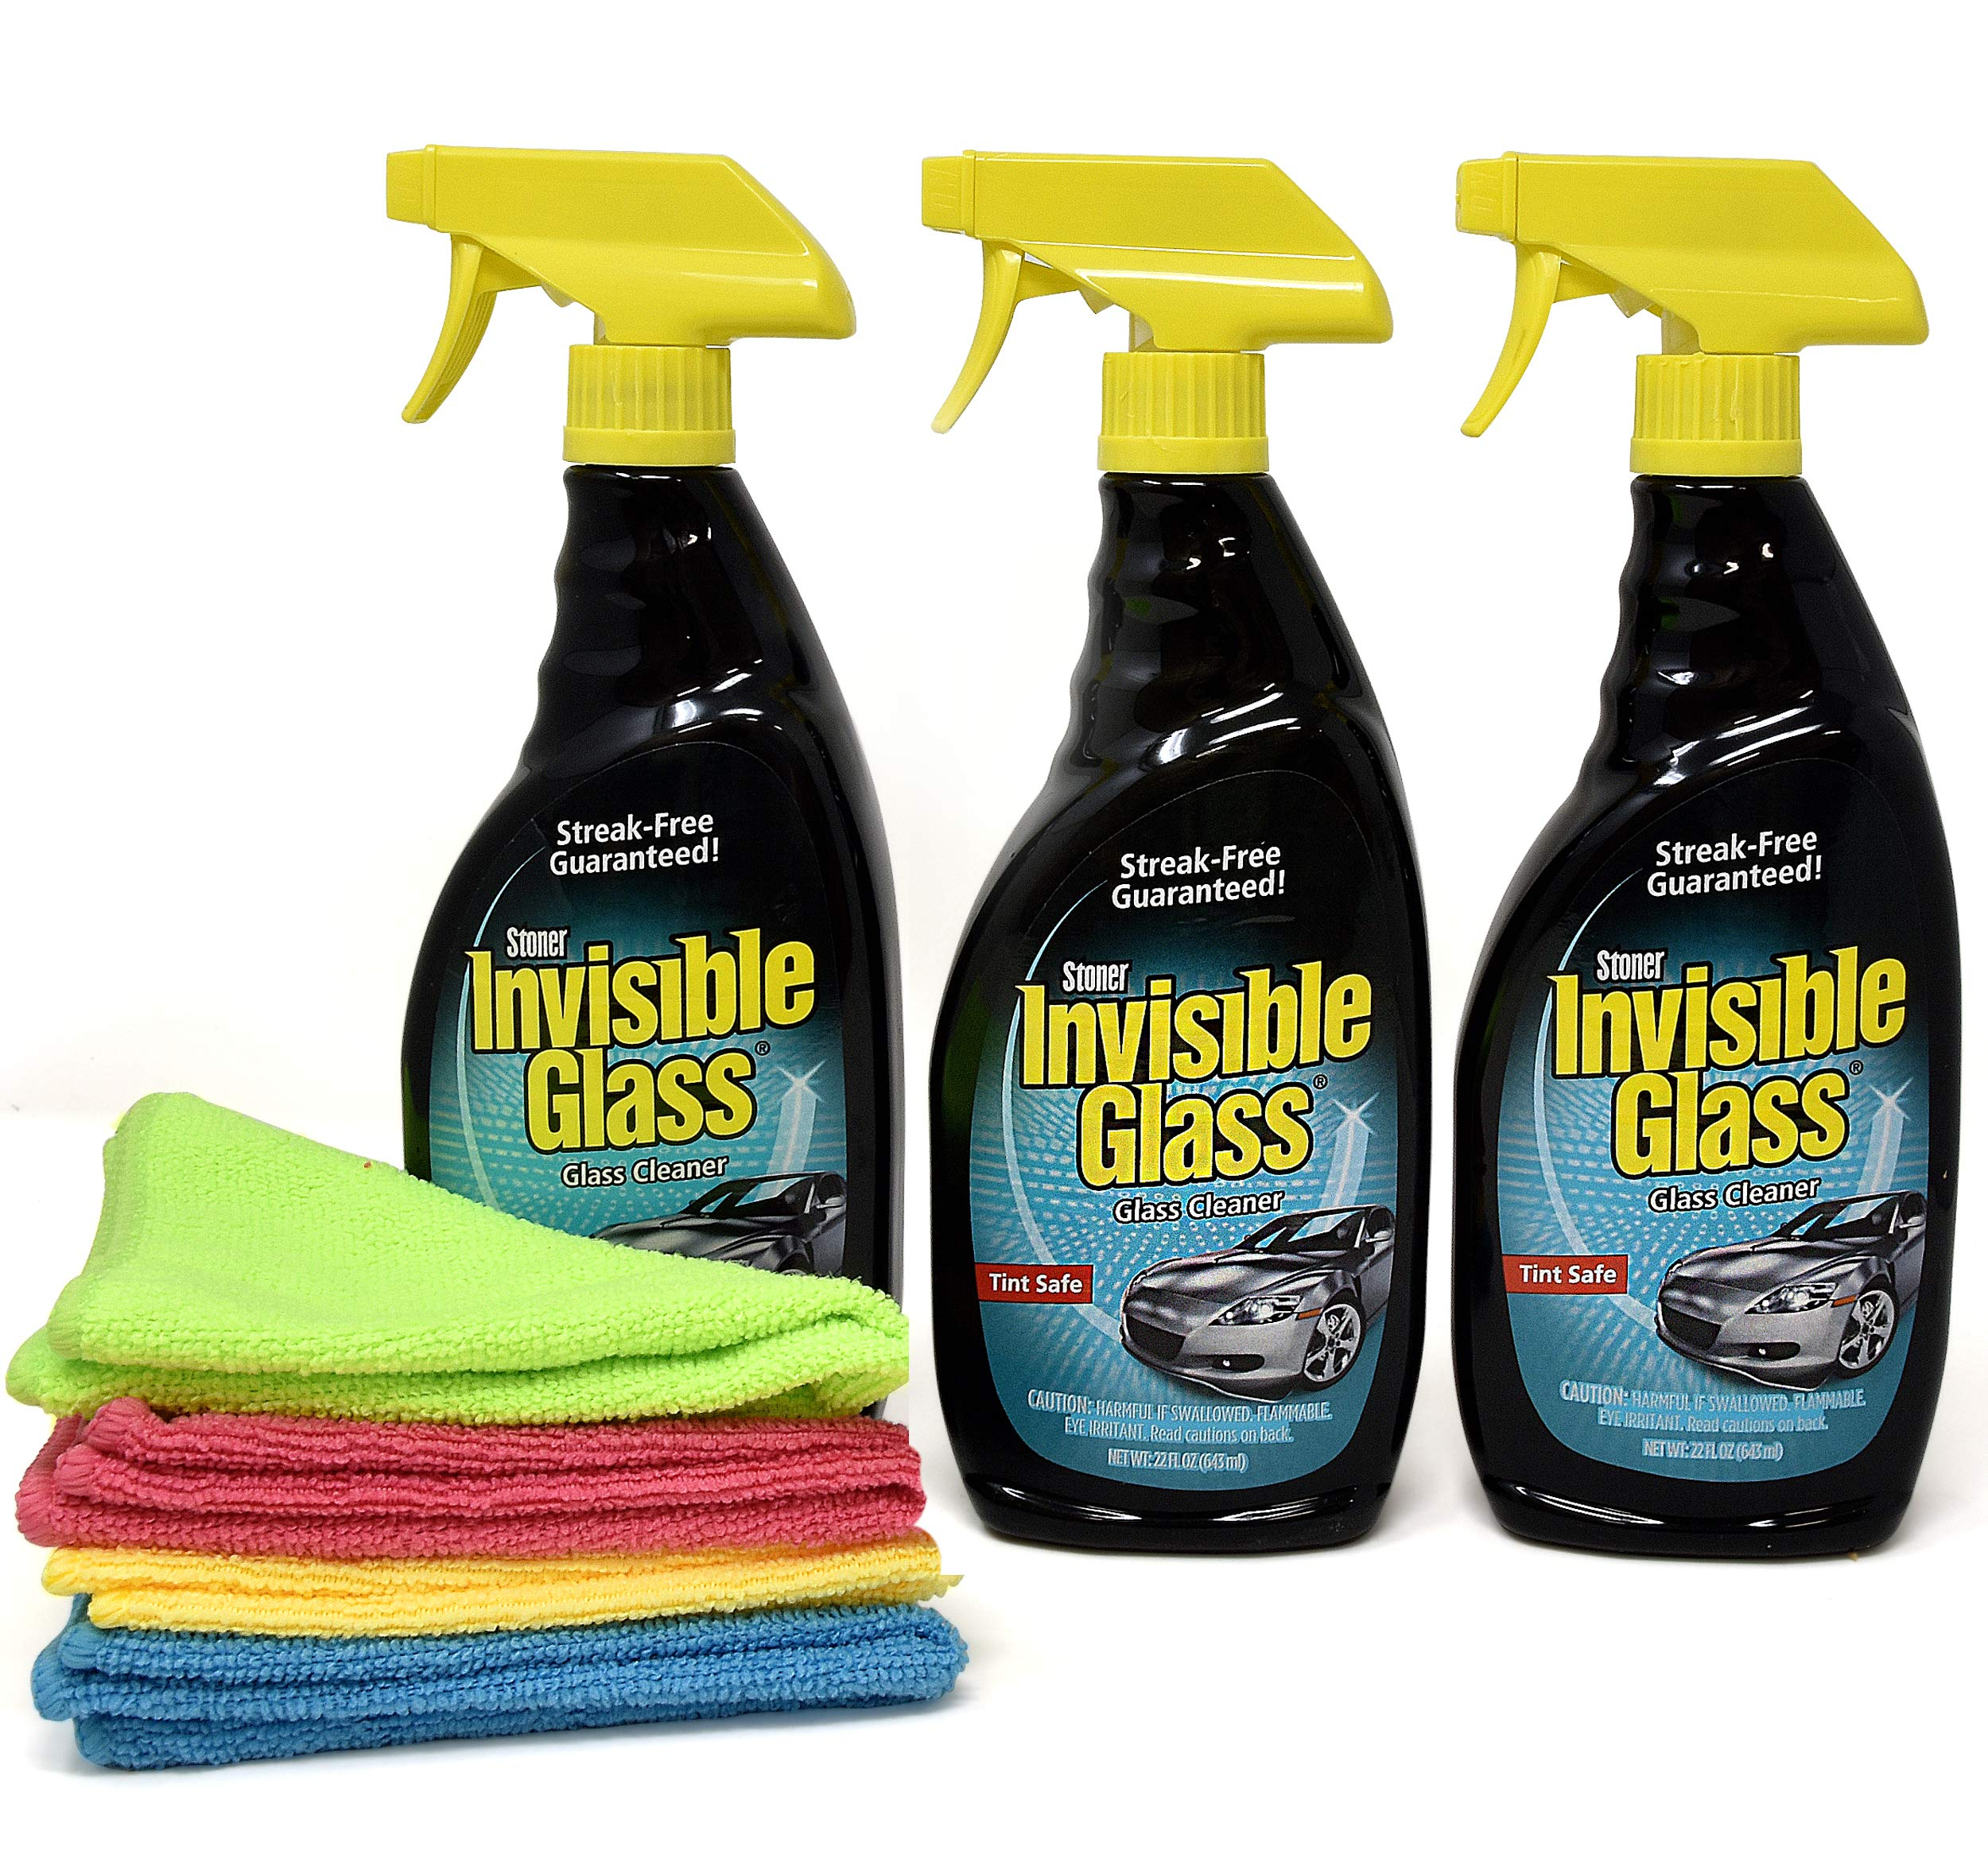 Invisible Glass Cleaner and Window Spray, Streak Free Shine for Auto, Film Free Glass Cleaner Safe for Windshield, Tinted and Non Tinted Windows-3 Pack, and 4 UBEN Microfiber 12x12 Cleaning Cloths